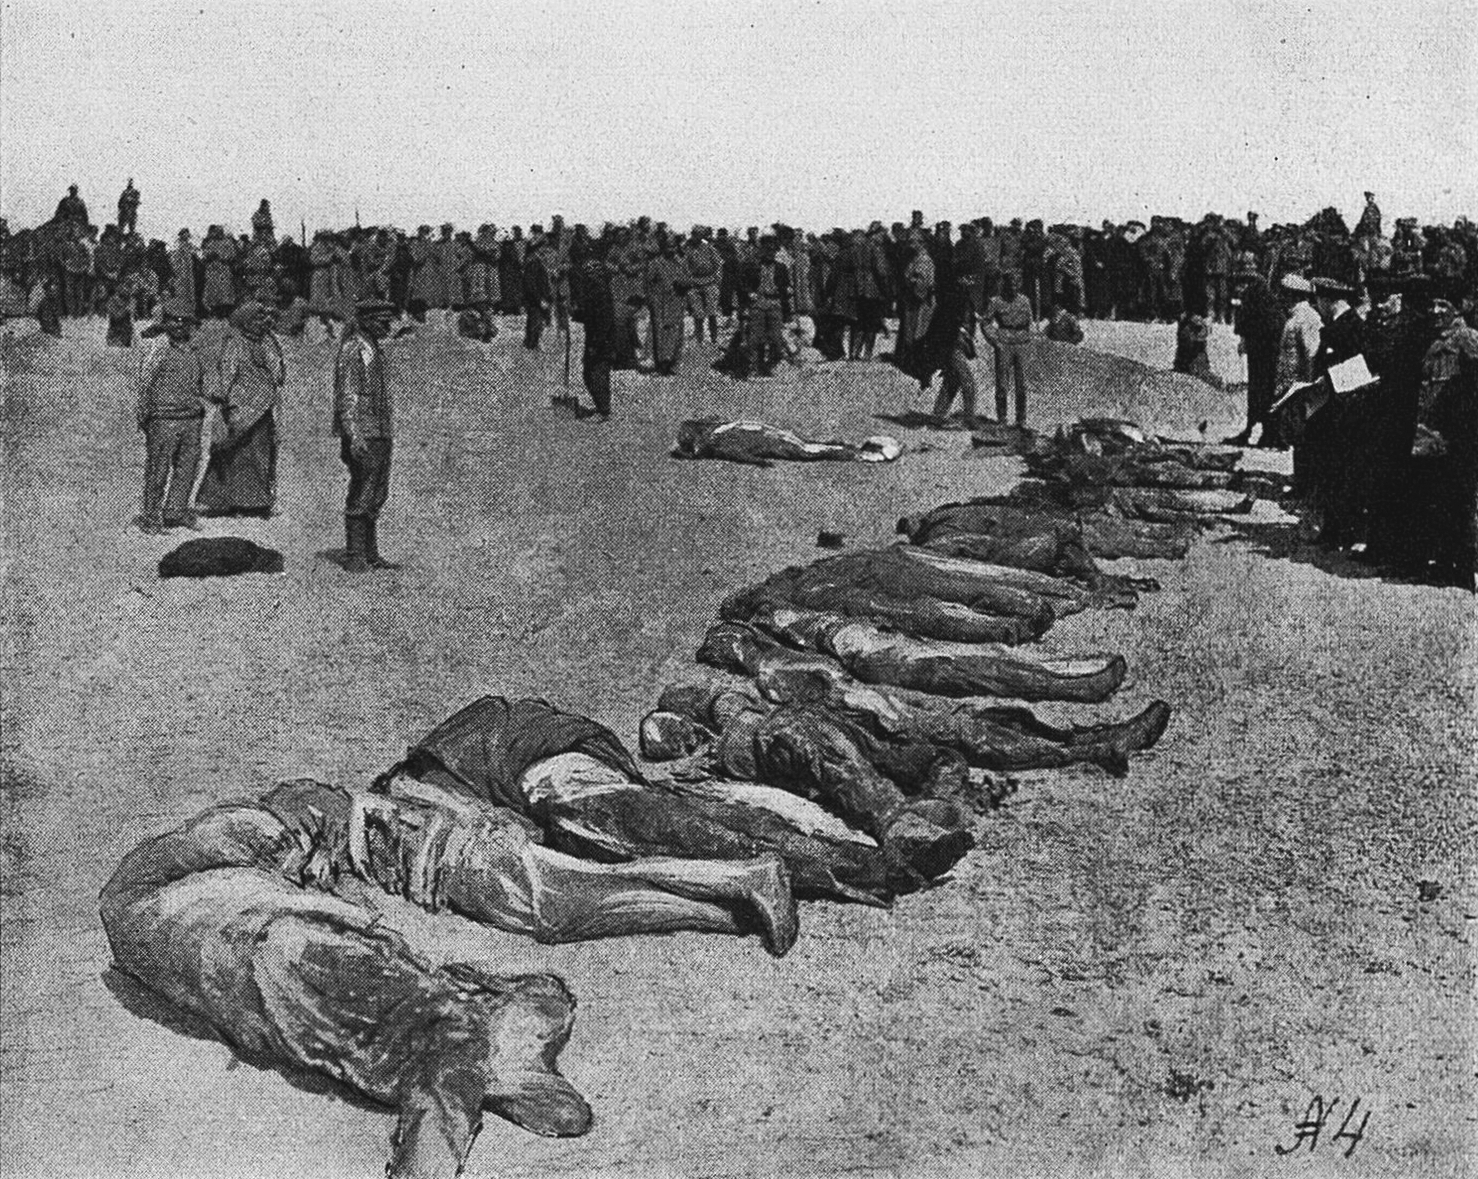 https://upload.wikimedia.org/wikipedia/commons/4/46/Evpatoria_red_terror_corpses_at_sea_coast.jpg